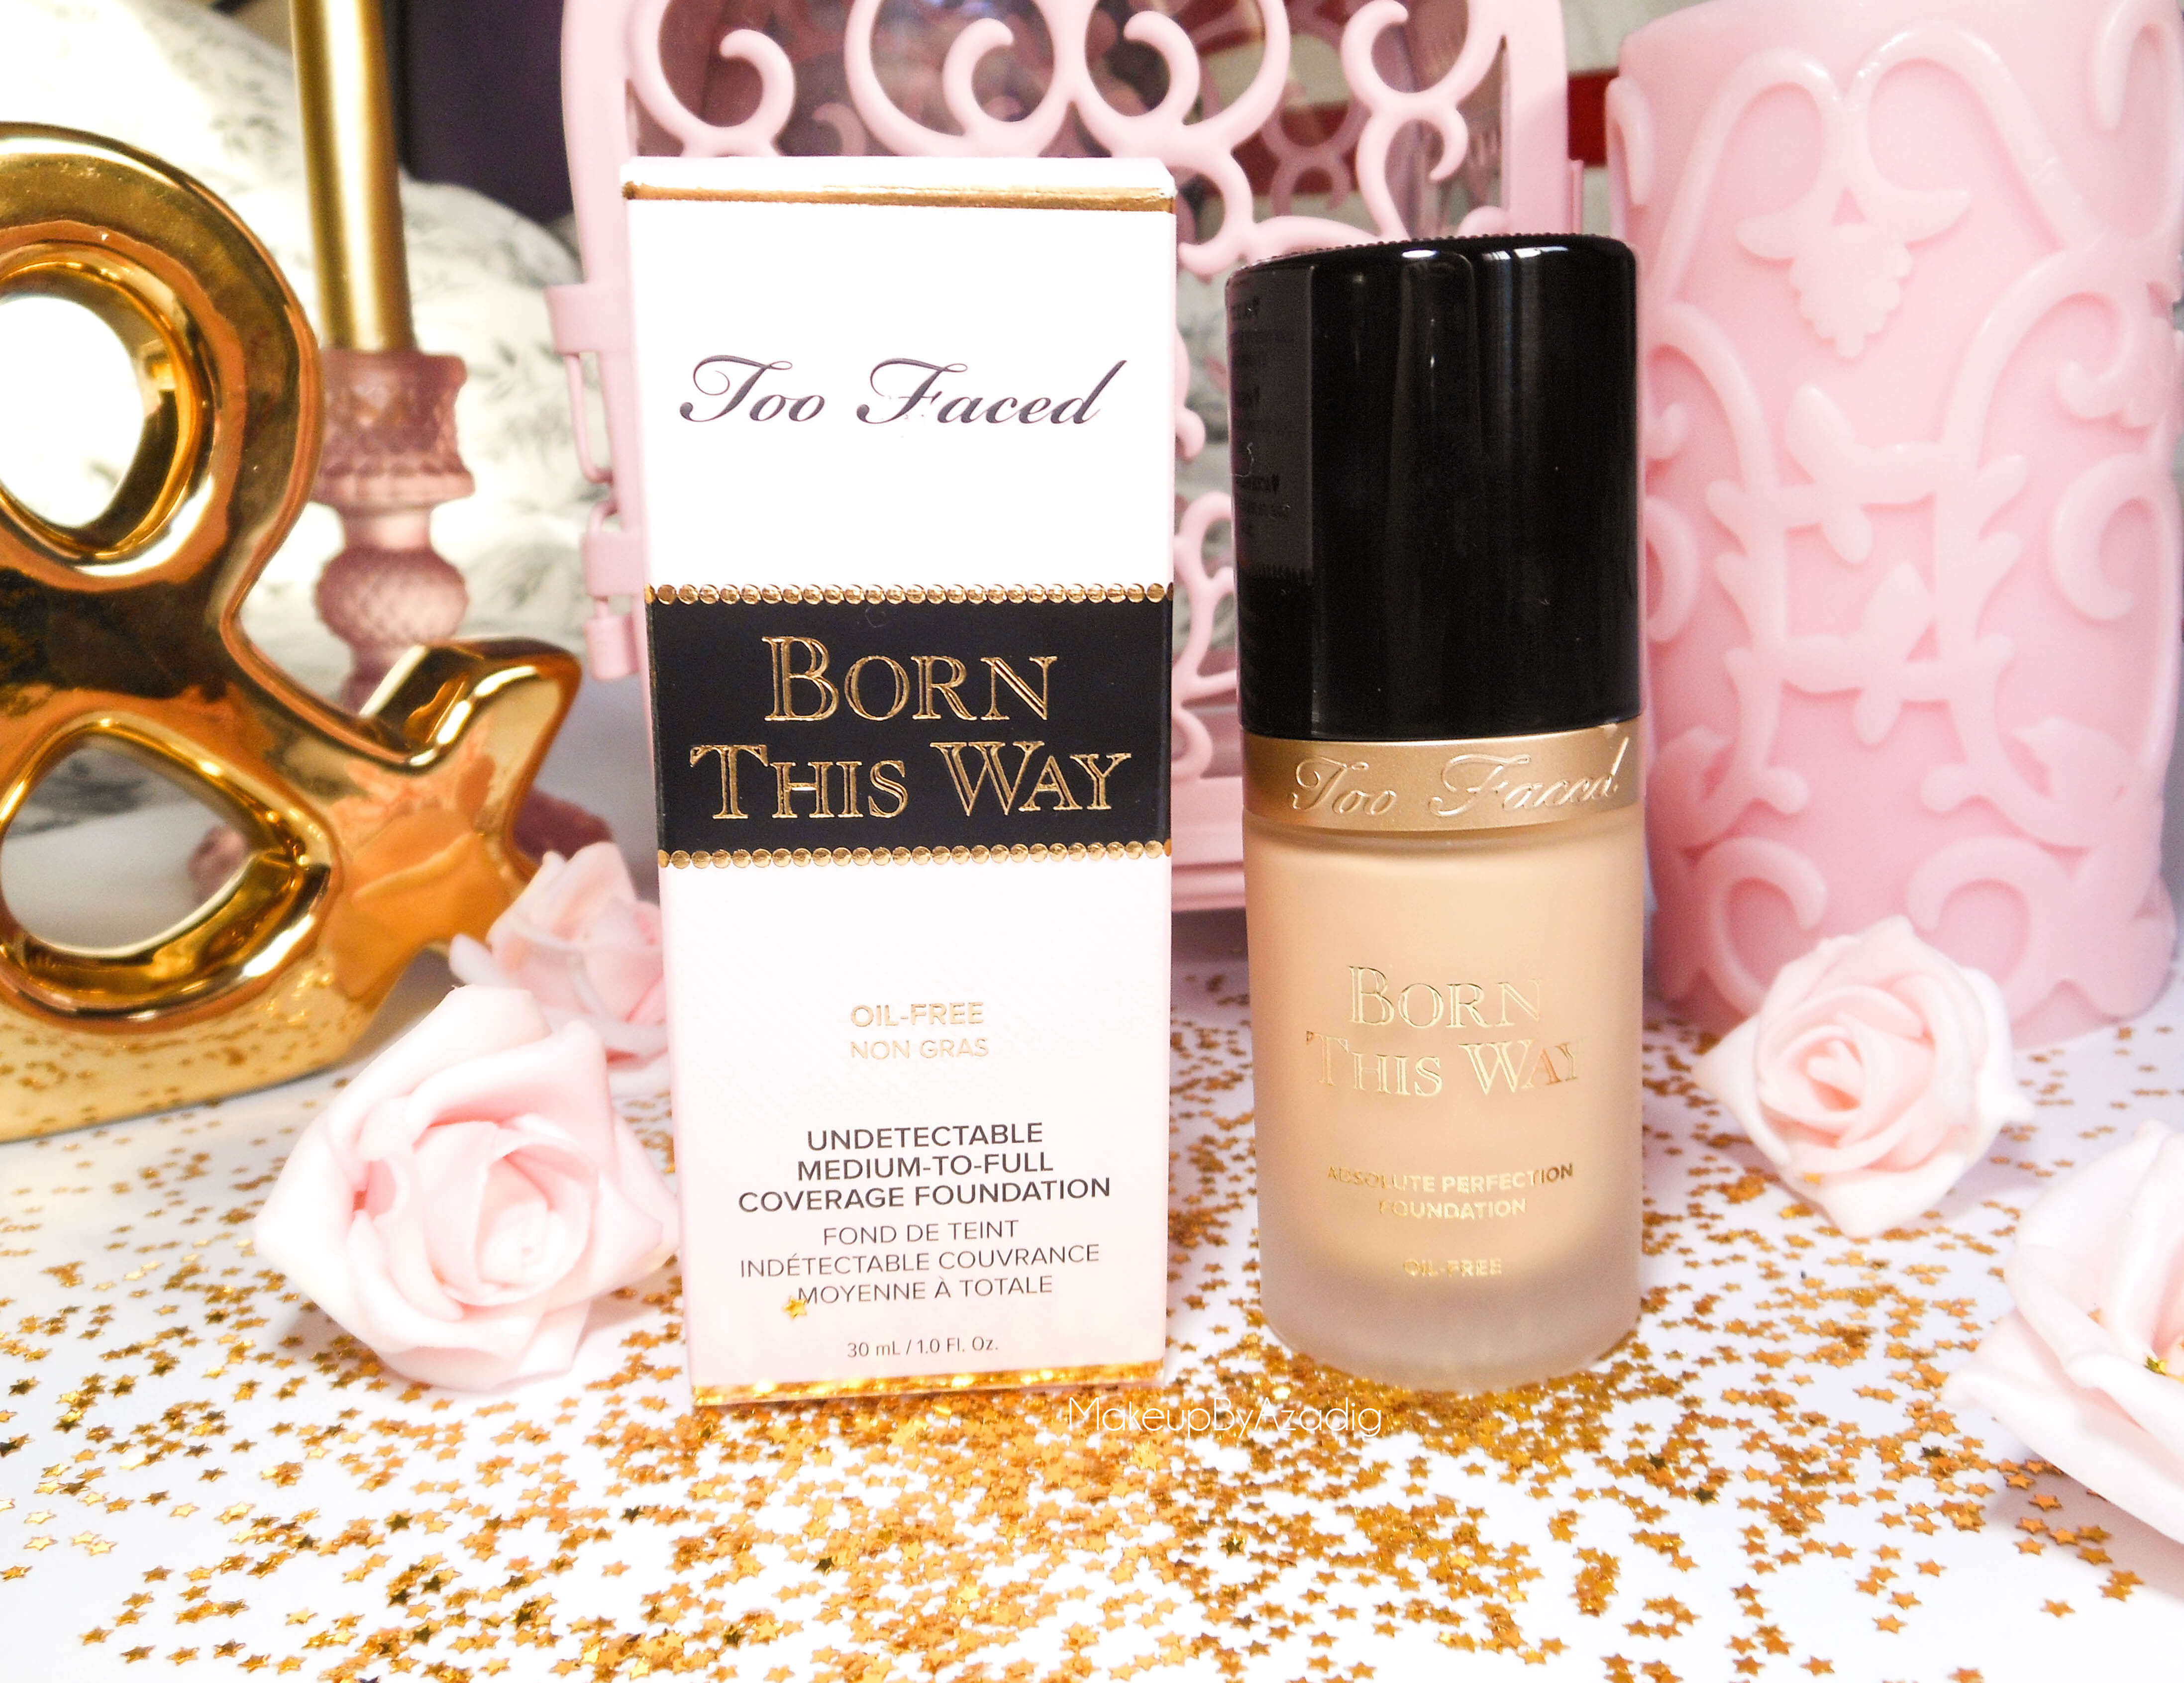 makeupbyazadig-too-faced-fond-de-teint-born-this-way-blog-vanille